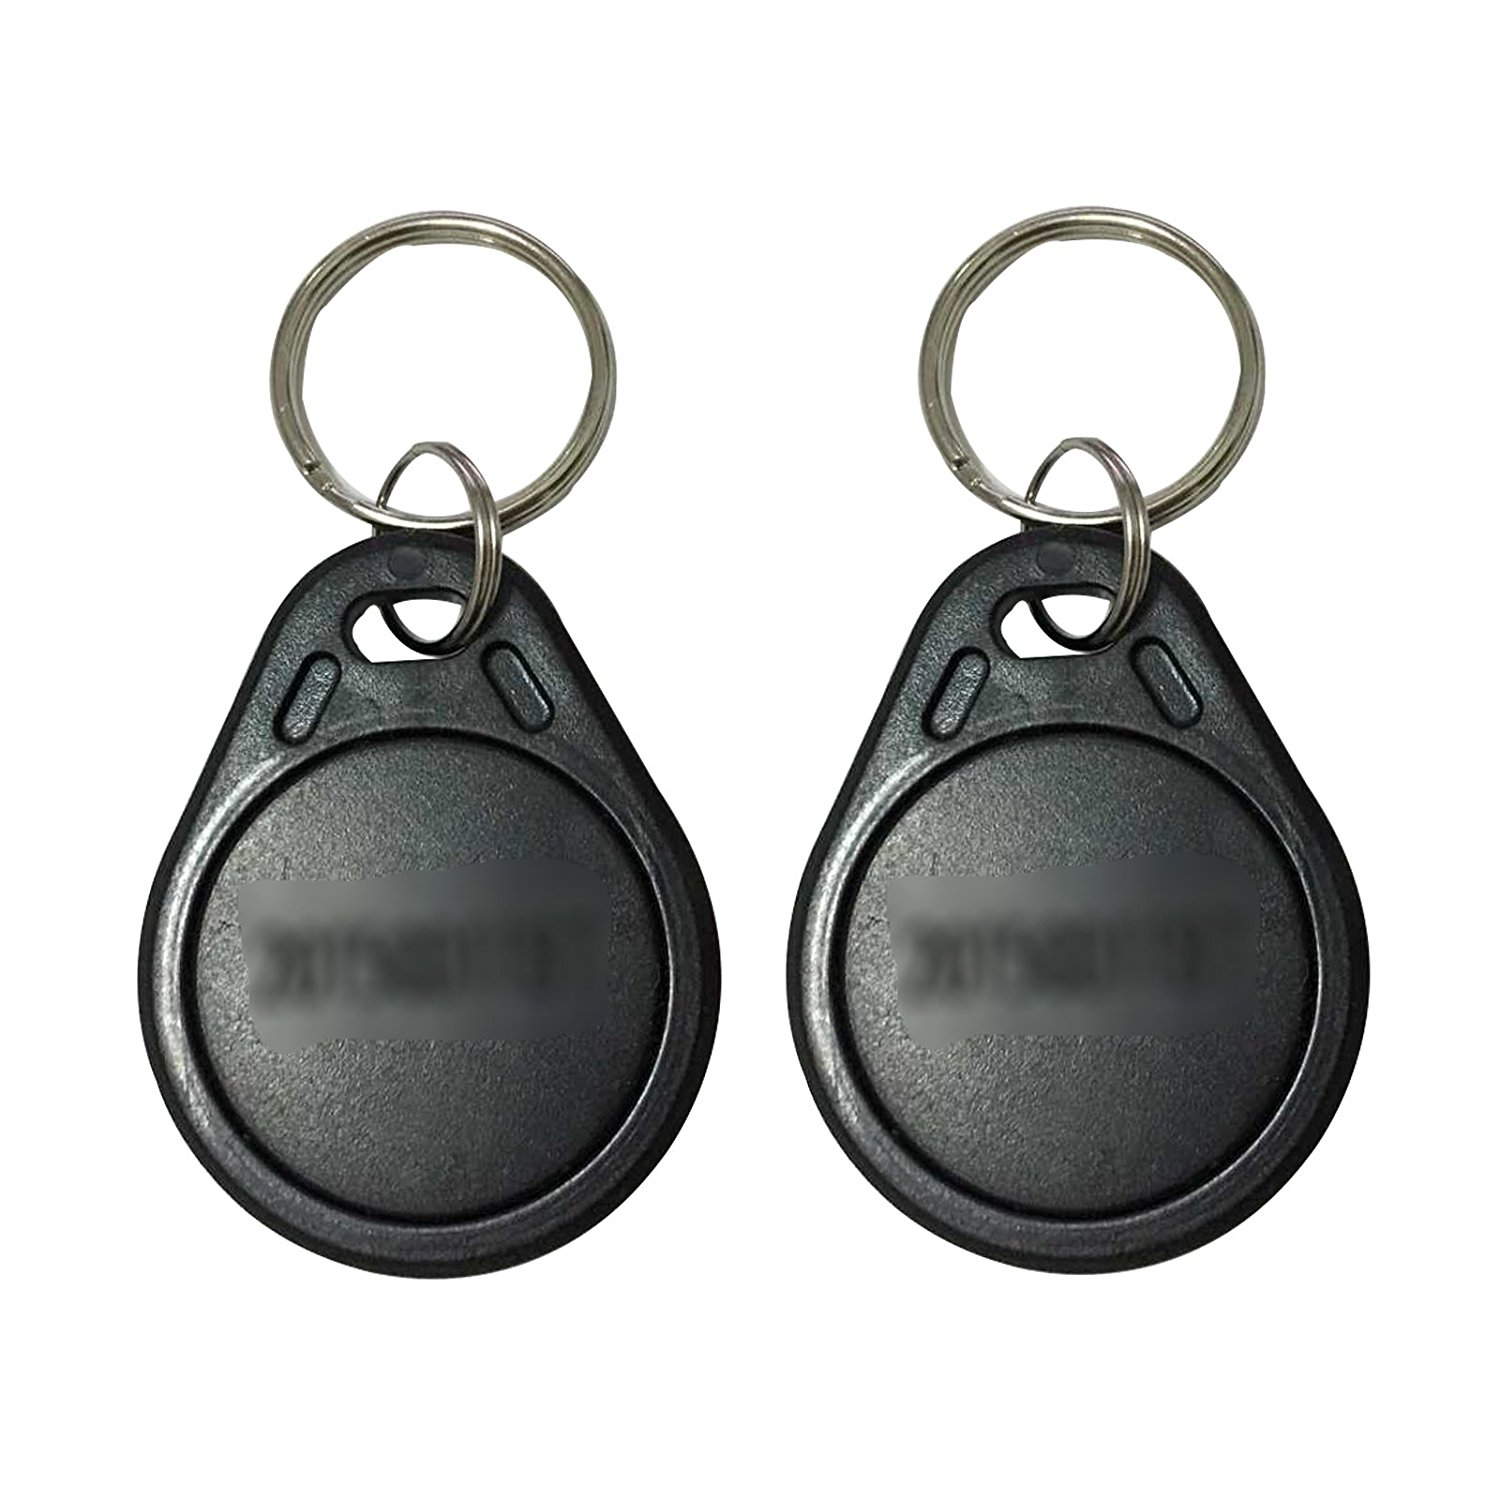 Cheap Key Fob Security System Find Key Fob Security System Deals On